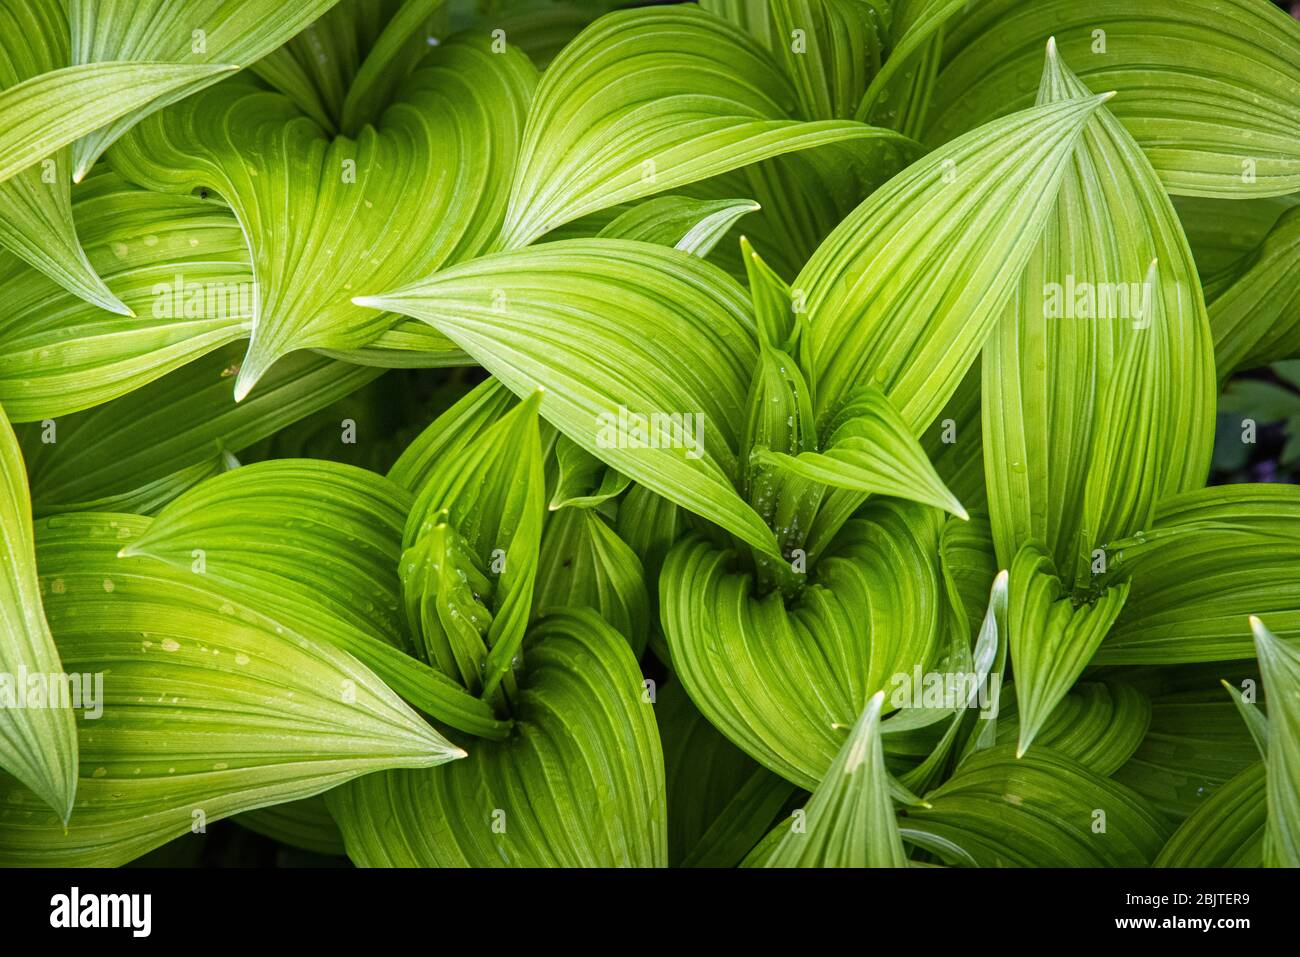 Top down view of the wavy green leaves of veratrum viride, a North American false hellebore, taken in the Cranberry Glades WMA of West Virginia. Stock Photo